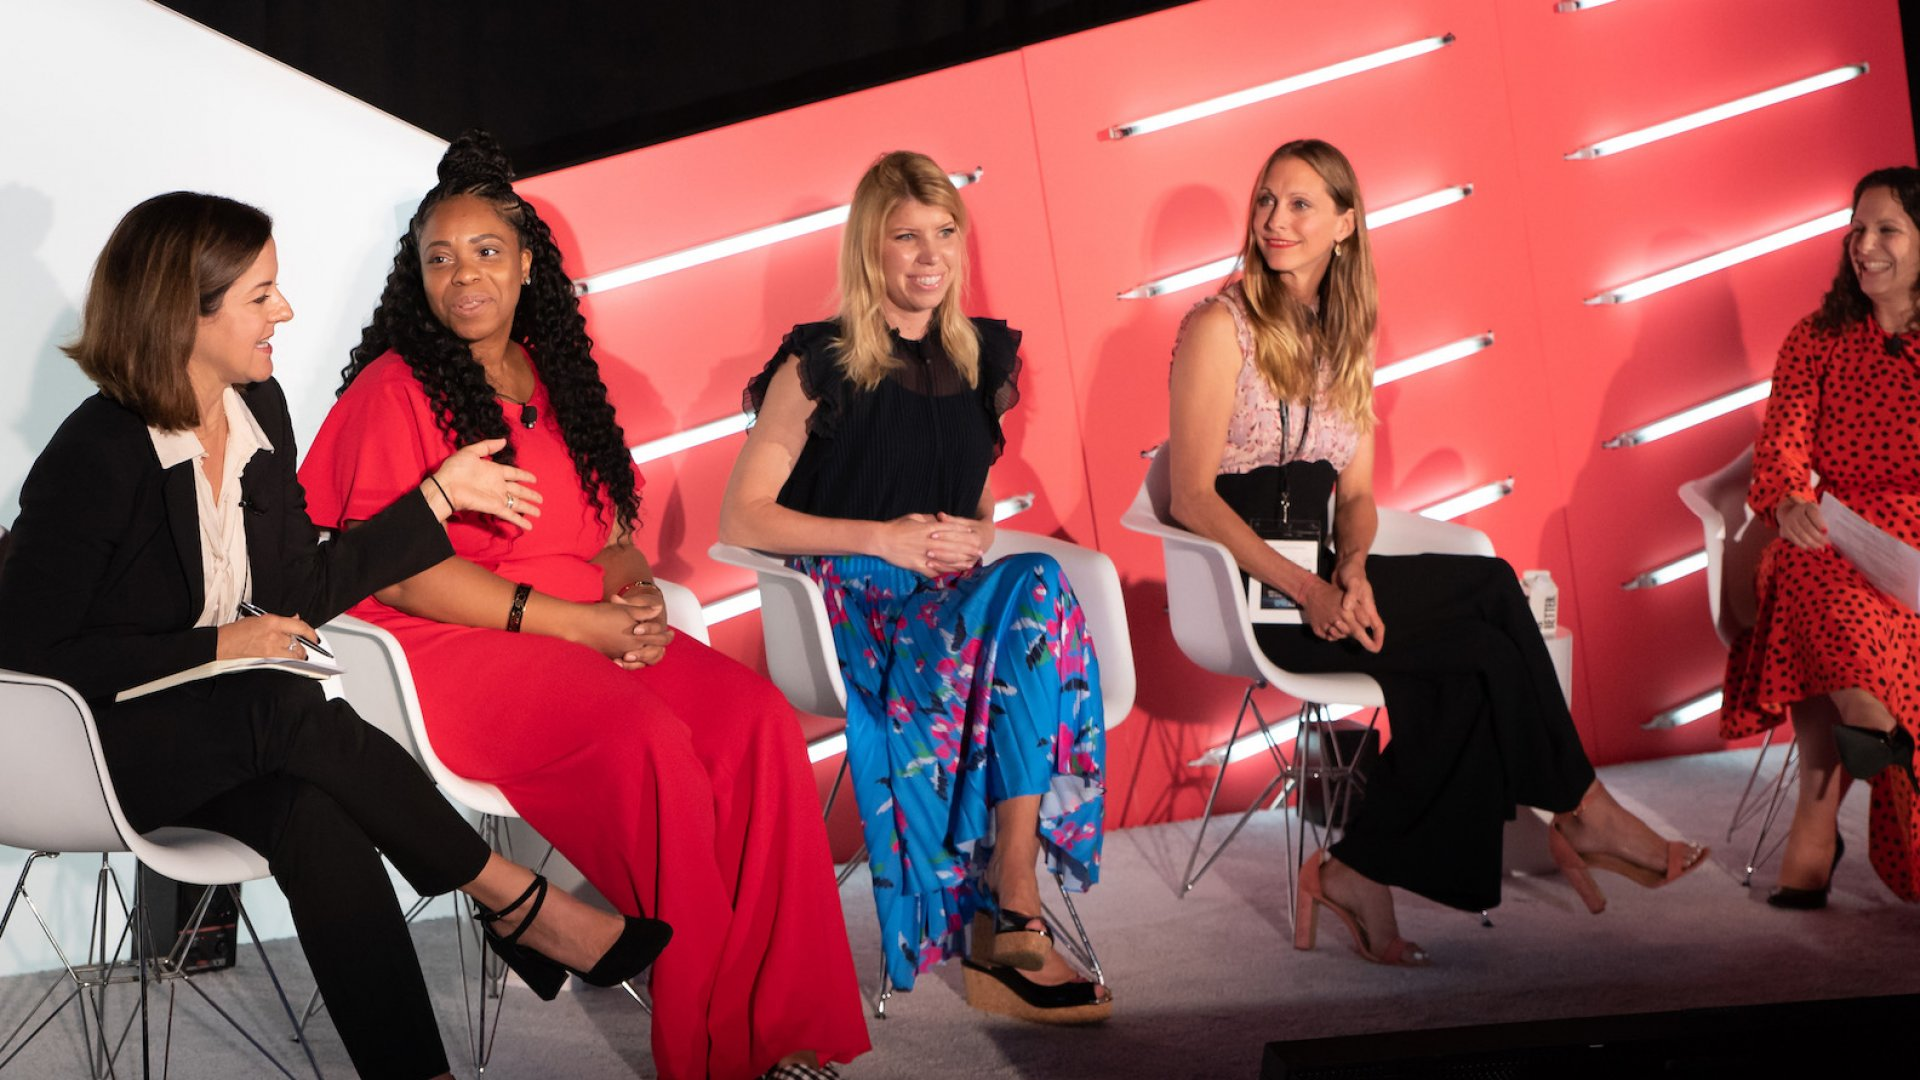 """Future of Content"" panel at Advertising Week New York 2019. From left to right: Stephanie Stahl, Candice Jones, Stacy Minero, Jamie Luke, Julie Hochheiser Ilkovich."